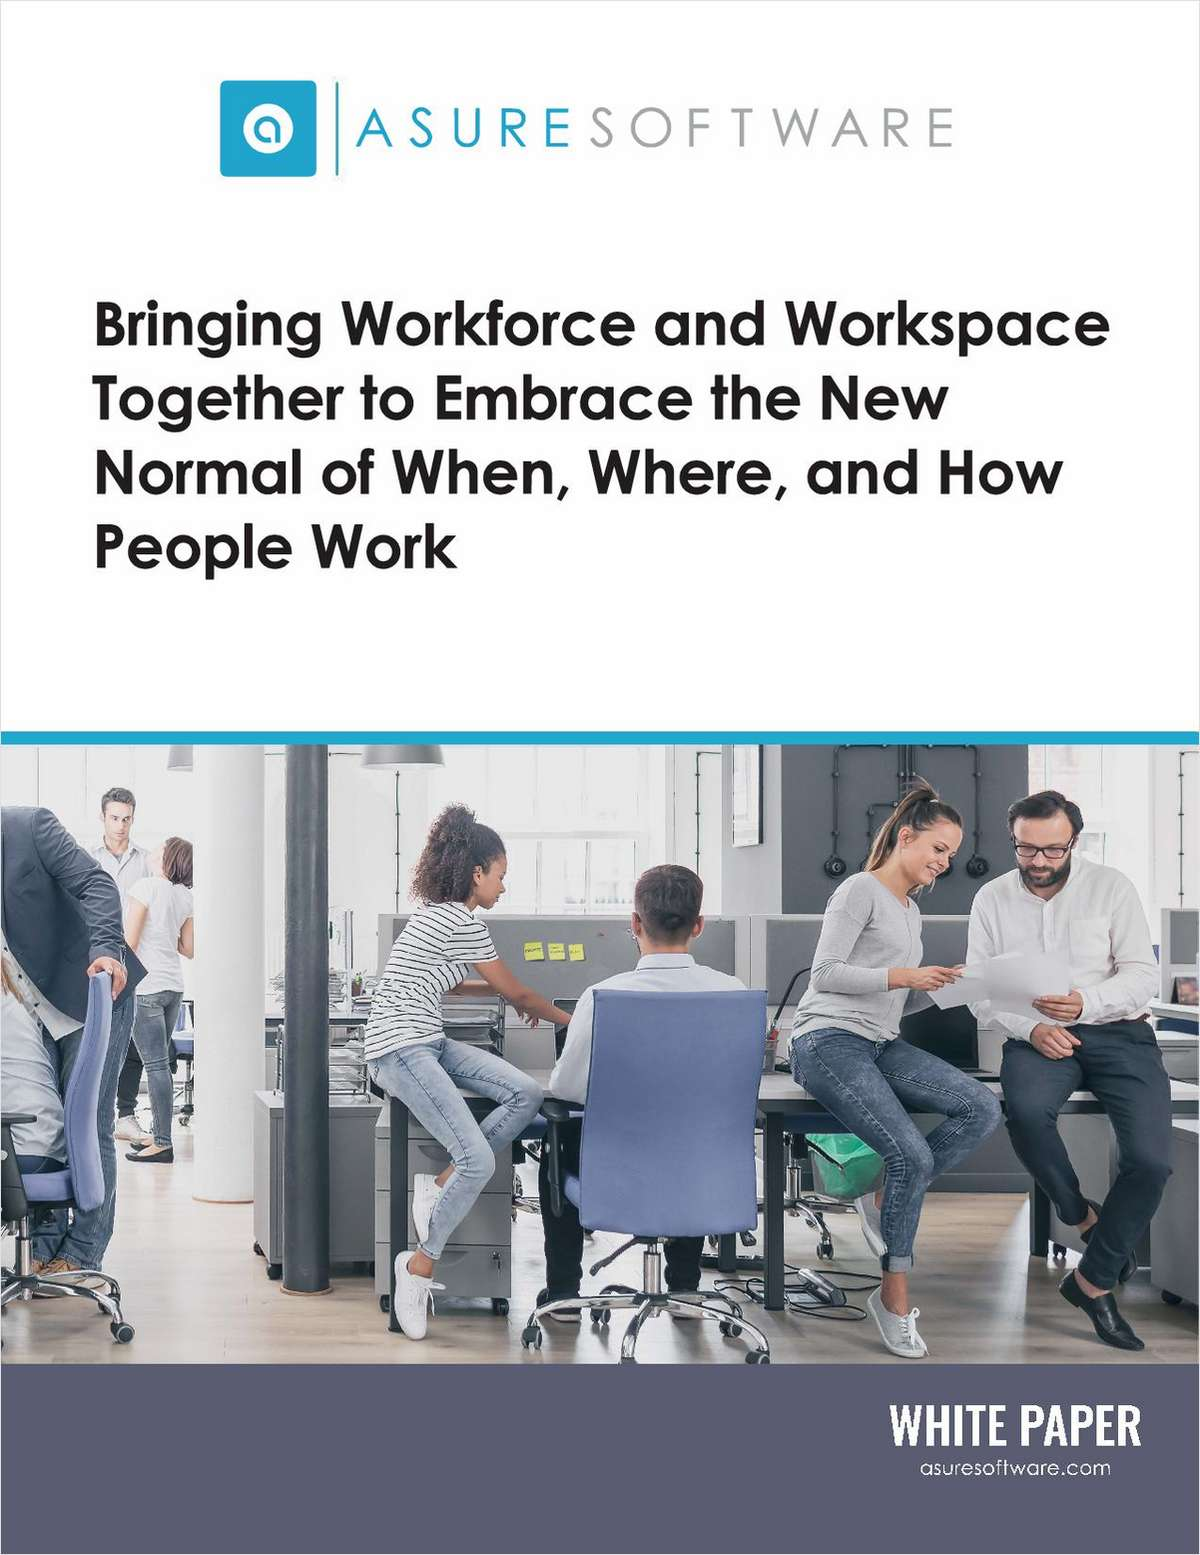 Workspace Optimisation - The New Normal of When, Where, and How People Work